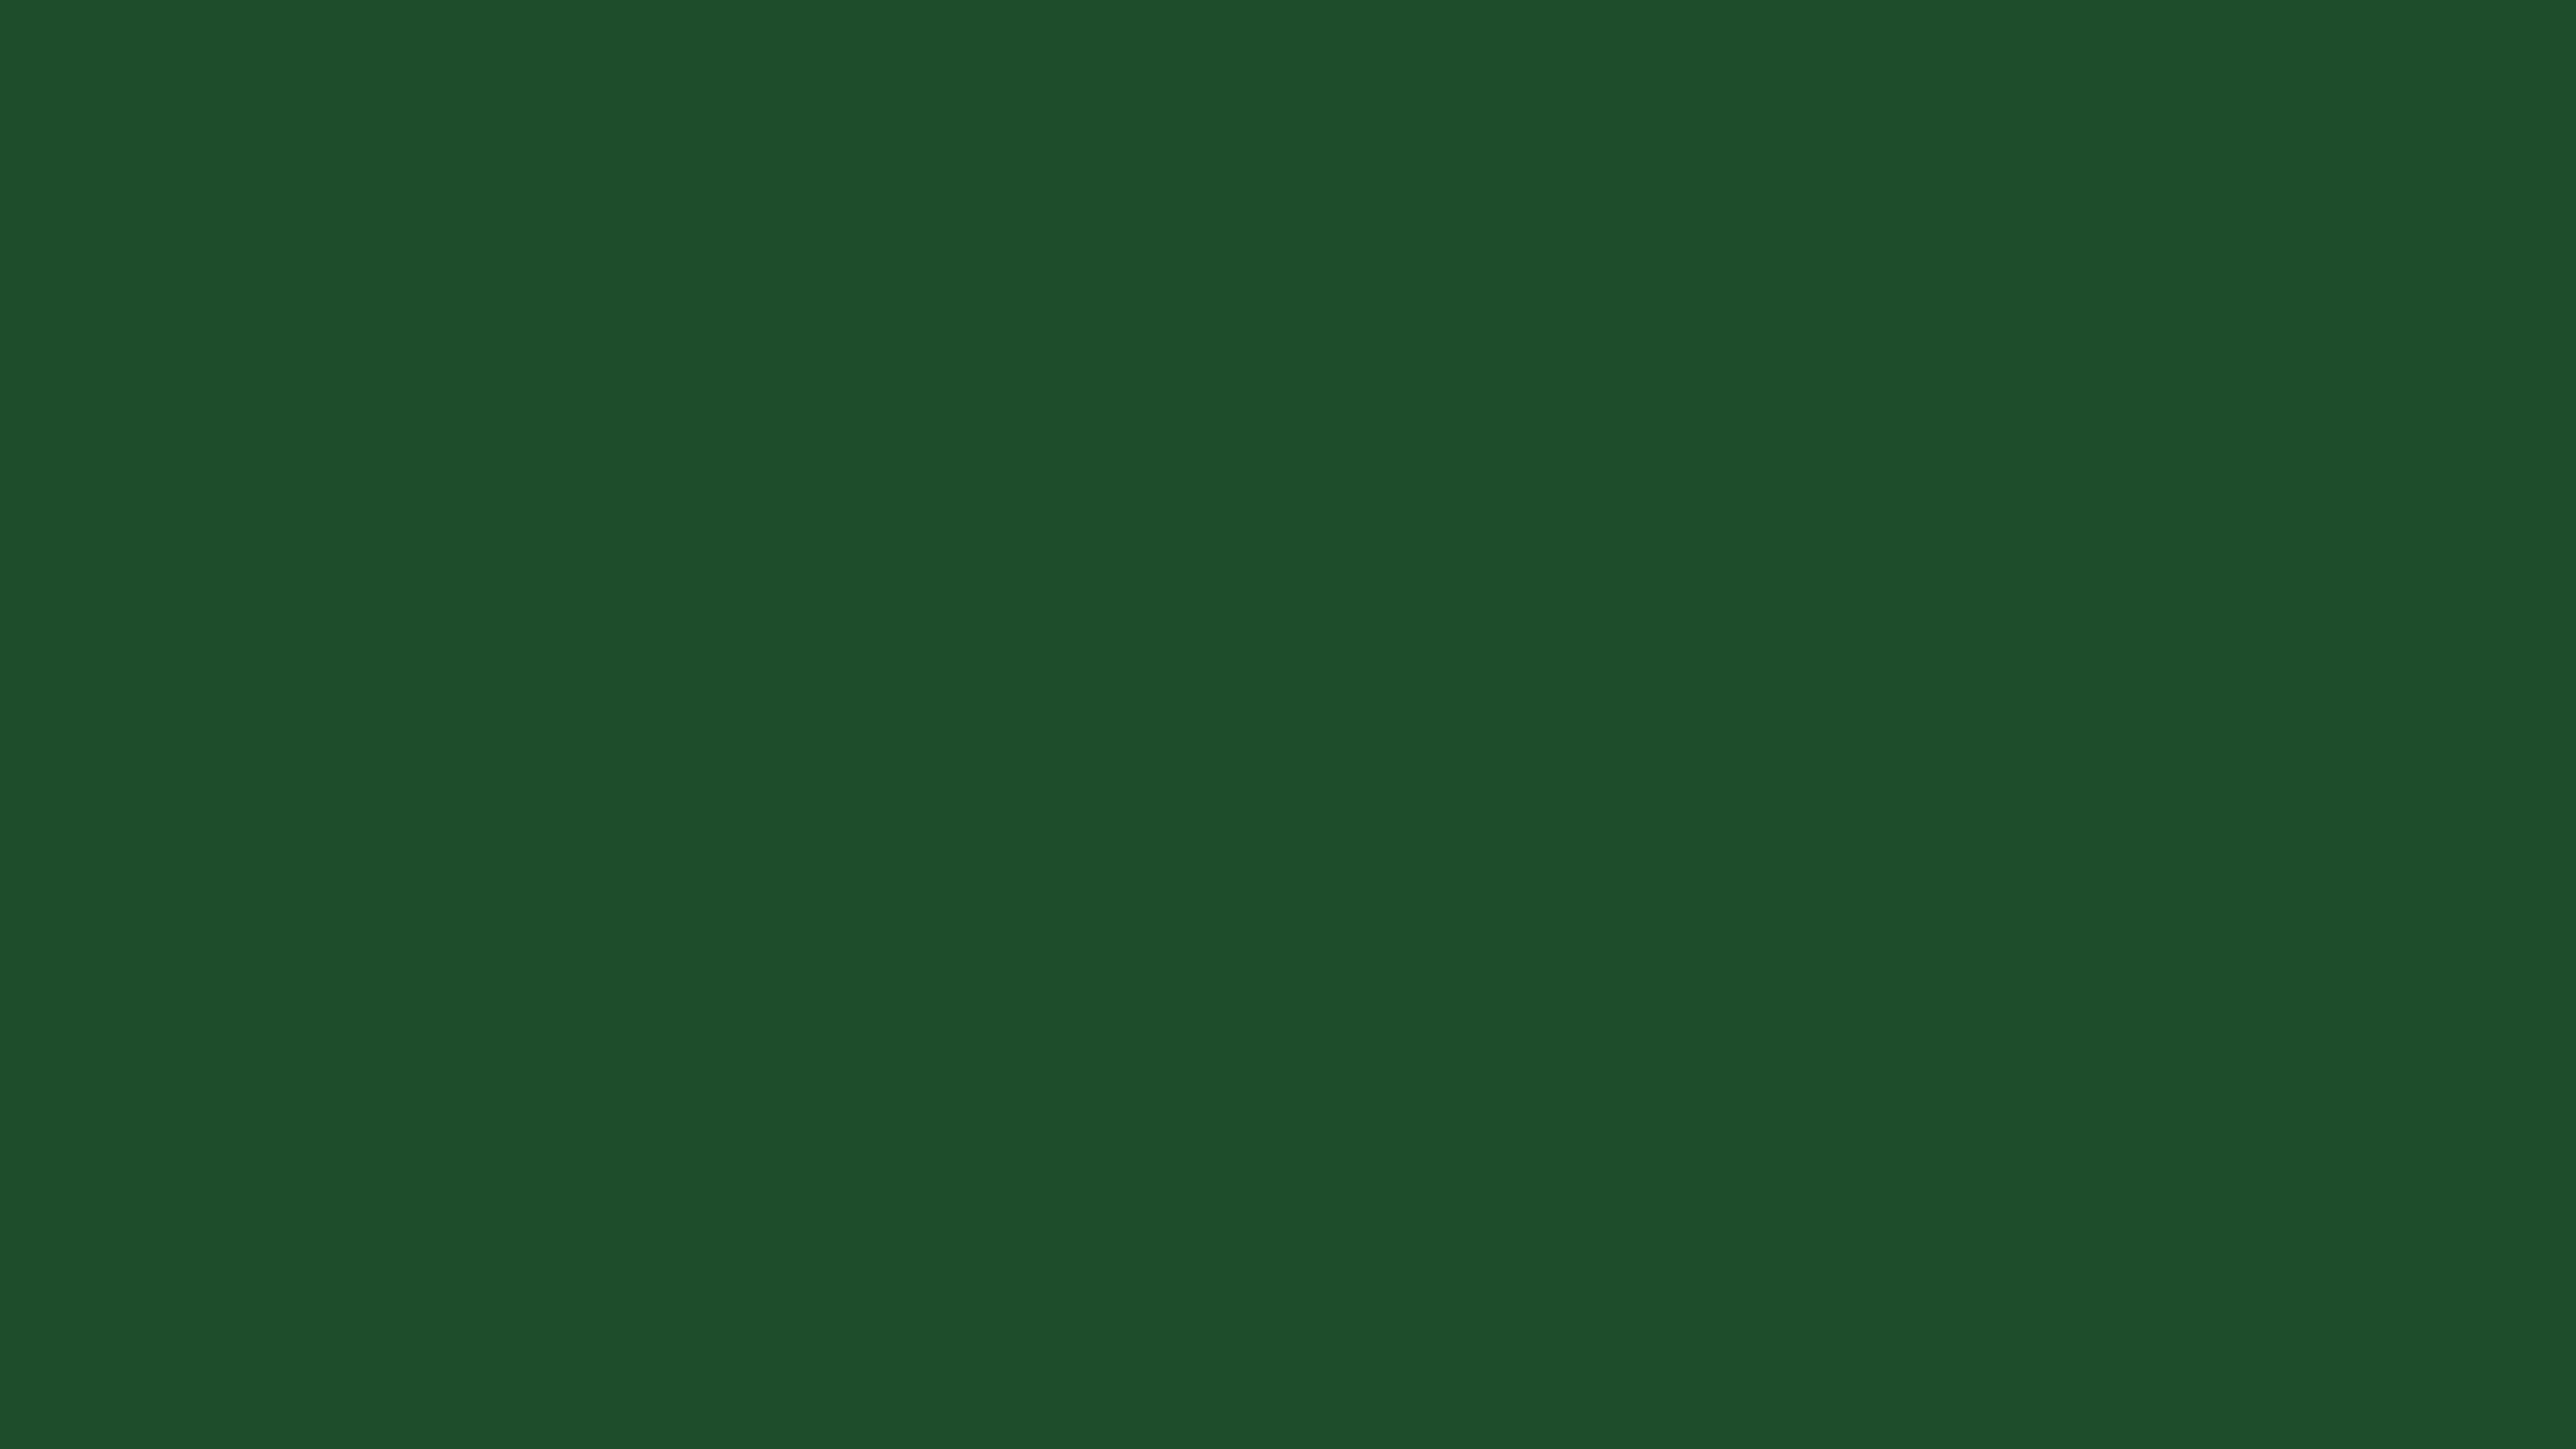 3840x2160 Cal Poly Green Solid Color Background 3840x2160